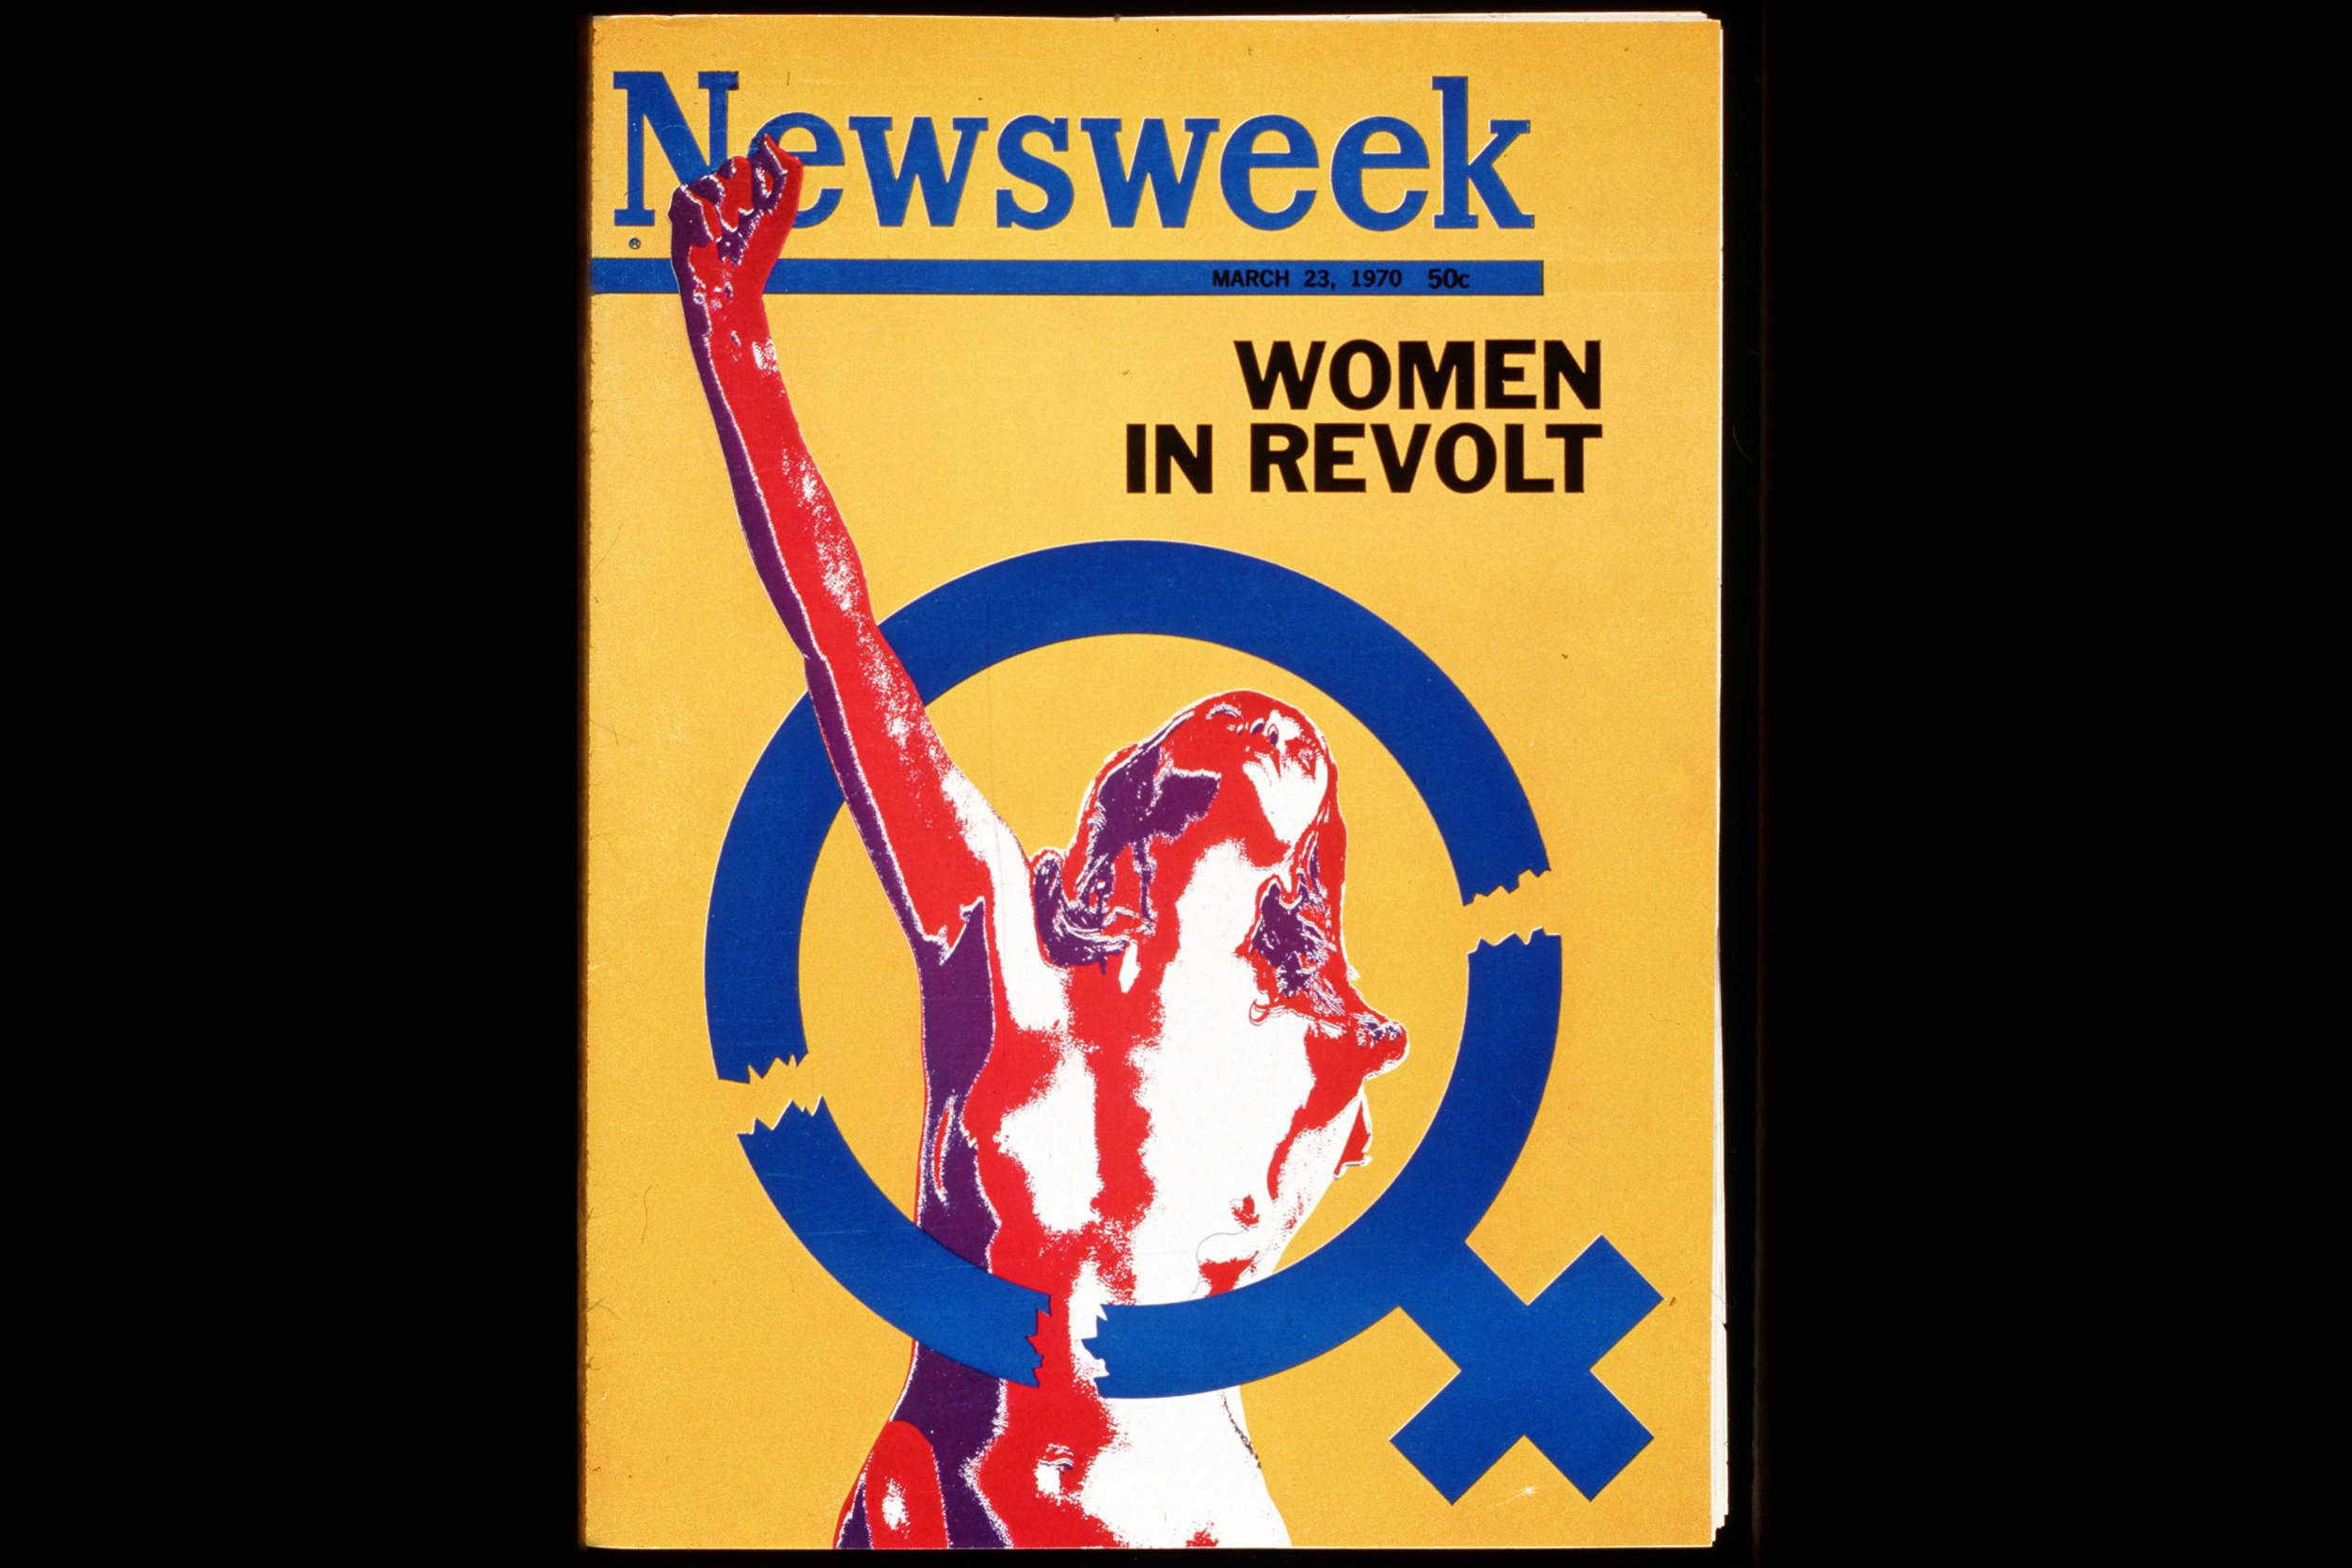 Women In Revolt A Newsweek Cover And Lawsuit Collide